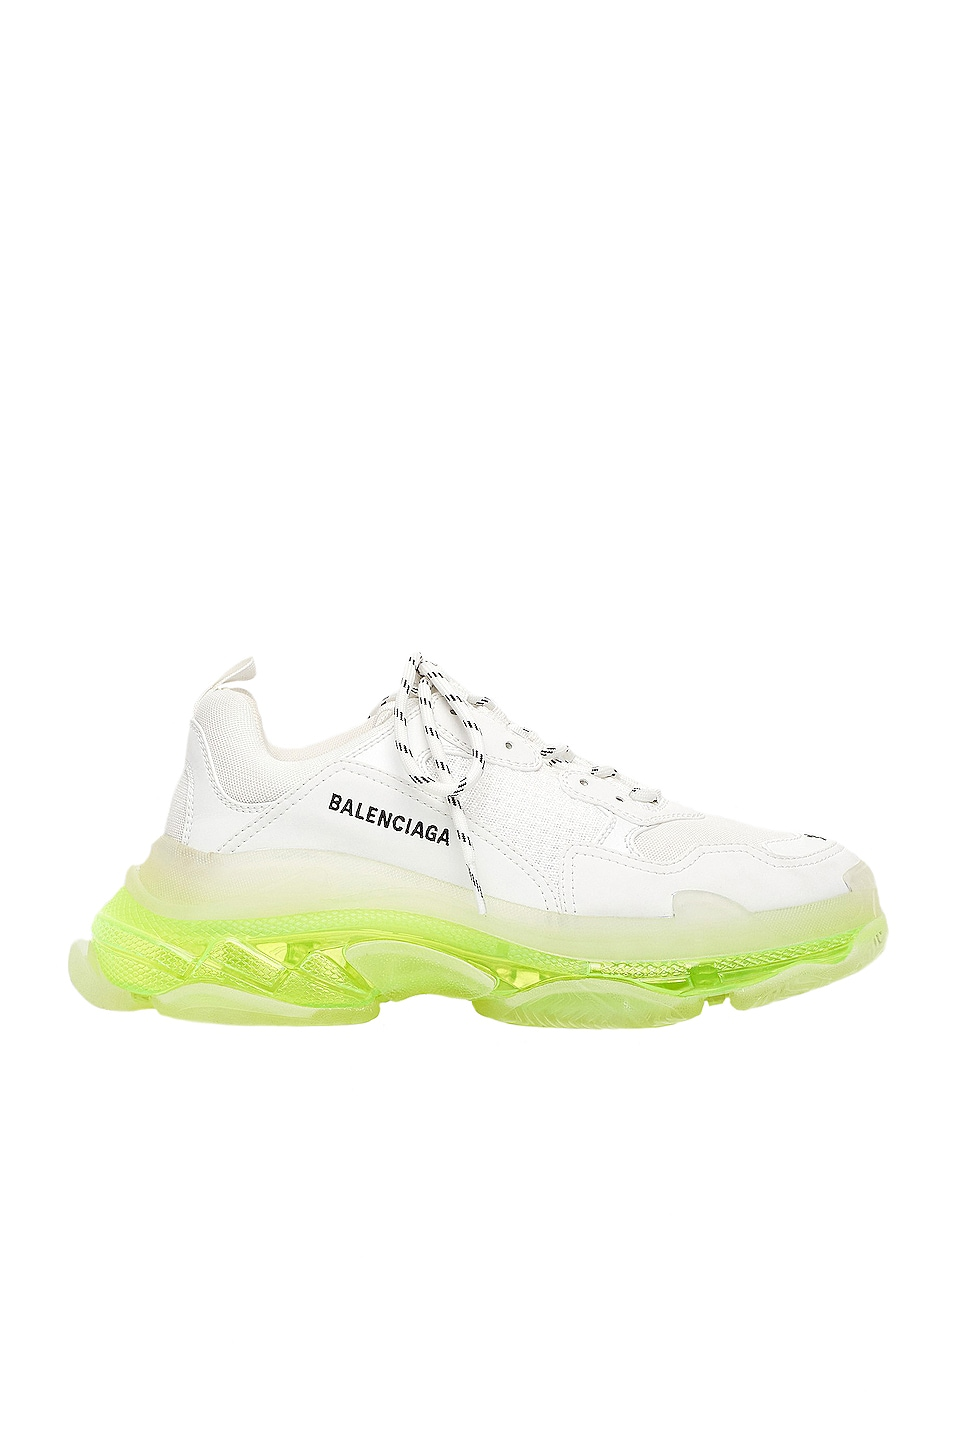 Image 1 of Balenciaga Triple S Clear Sole Sneakers in White & Fluo Yellow